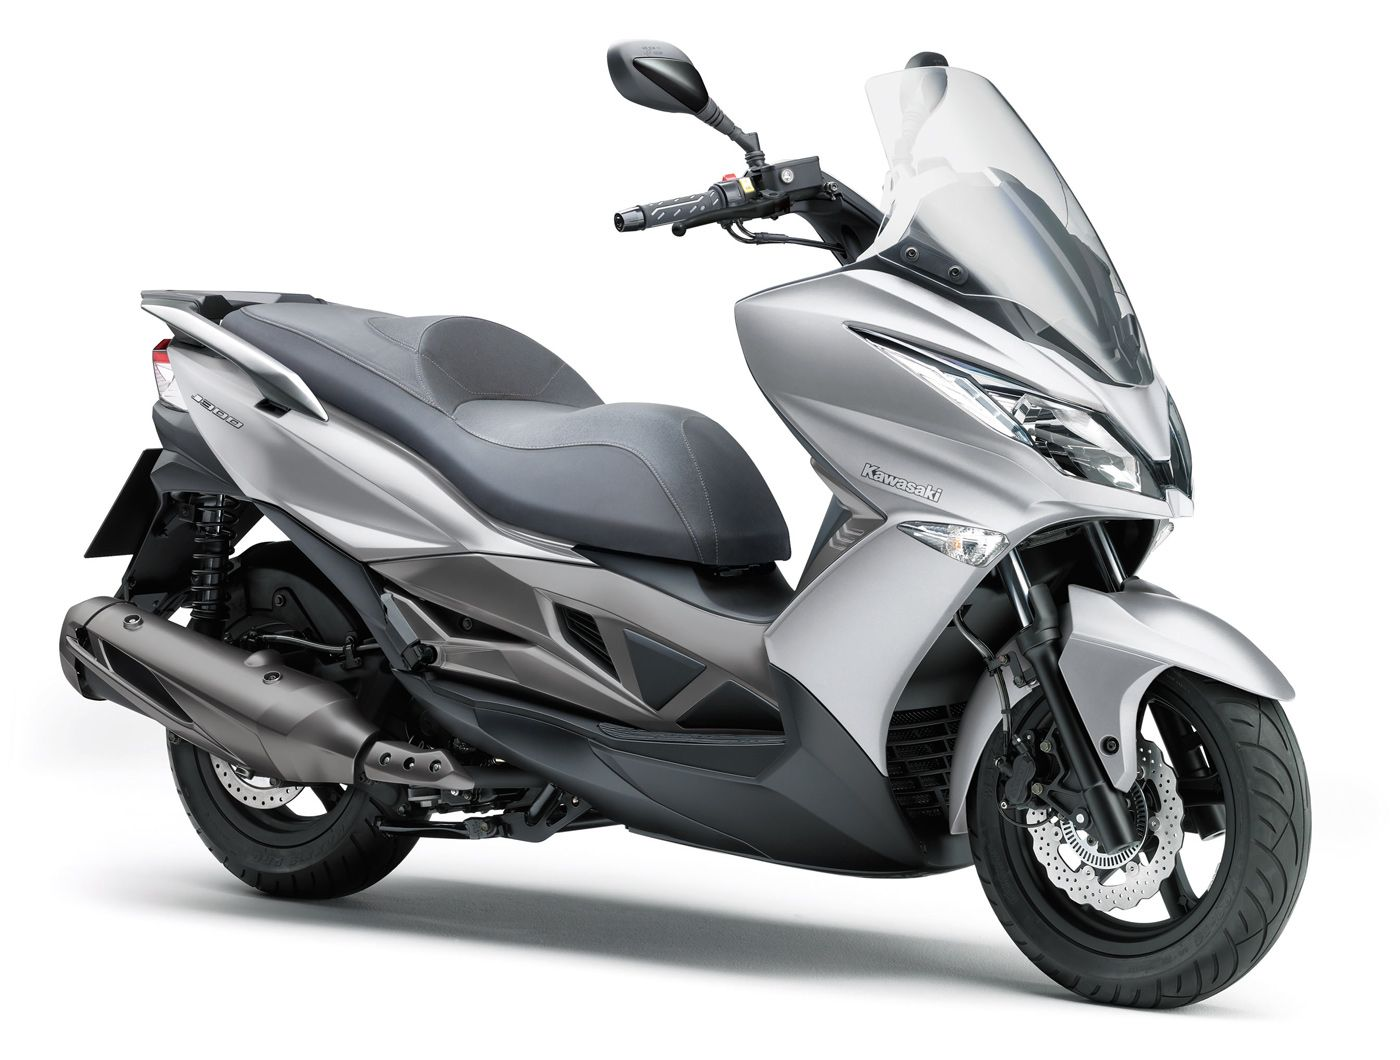 J300 ABS (SC300BEF). Part of the Sports Motorcycle Range